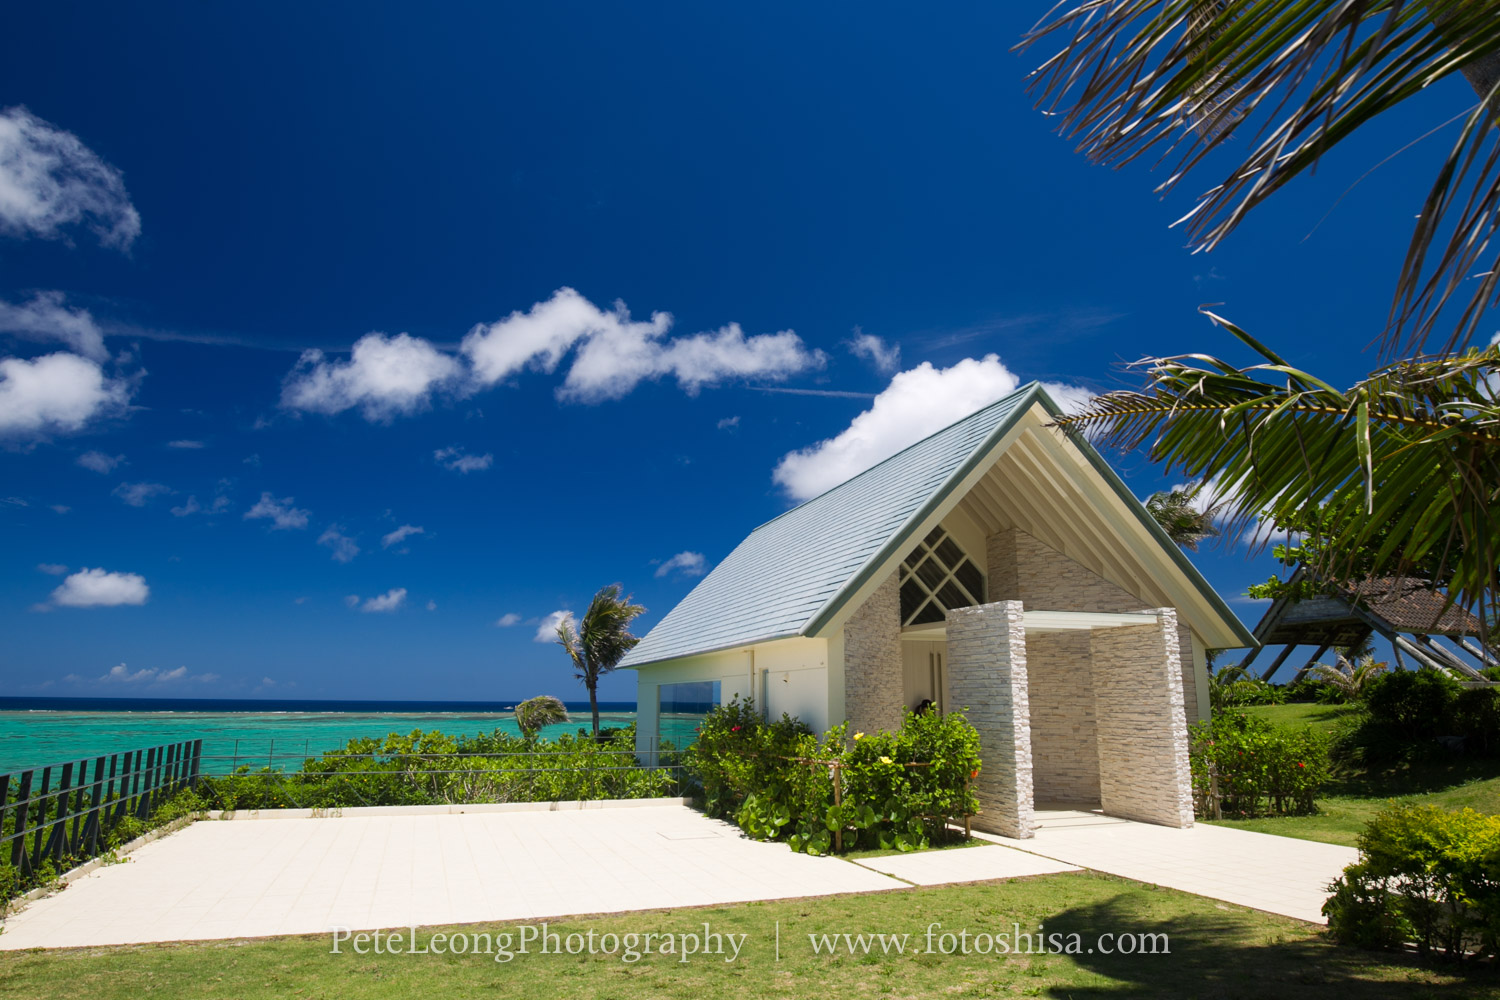 Im Hy To Offer Pre Wedding Photo Packages At The Resort Chapel Below Located In Moon Beach Onna Village Also Has An Awesome